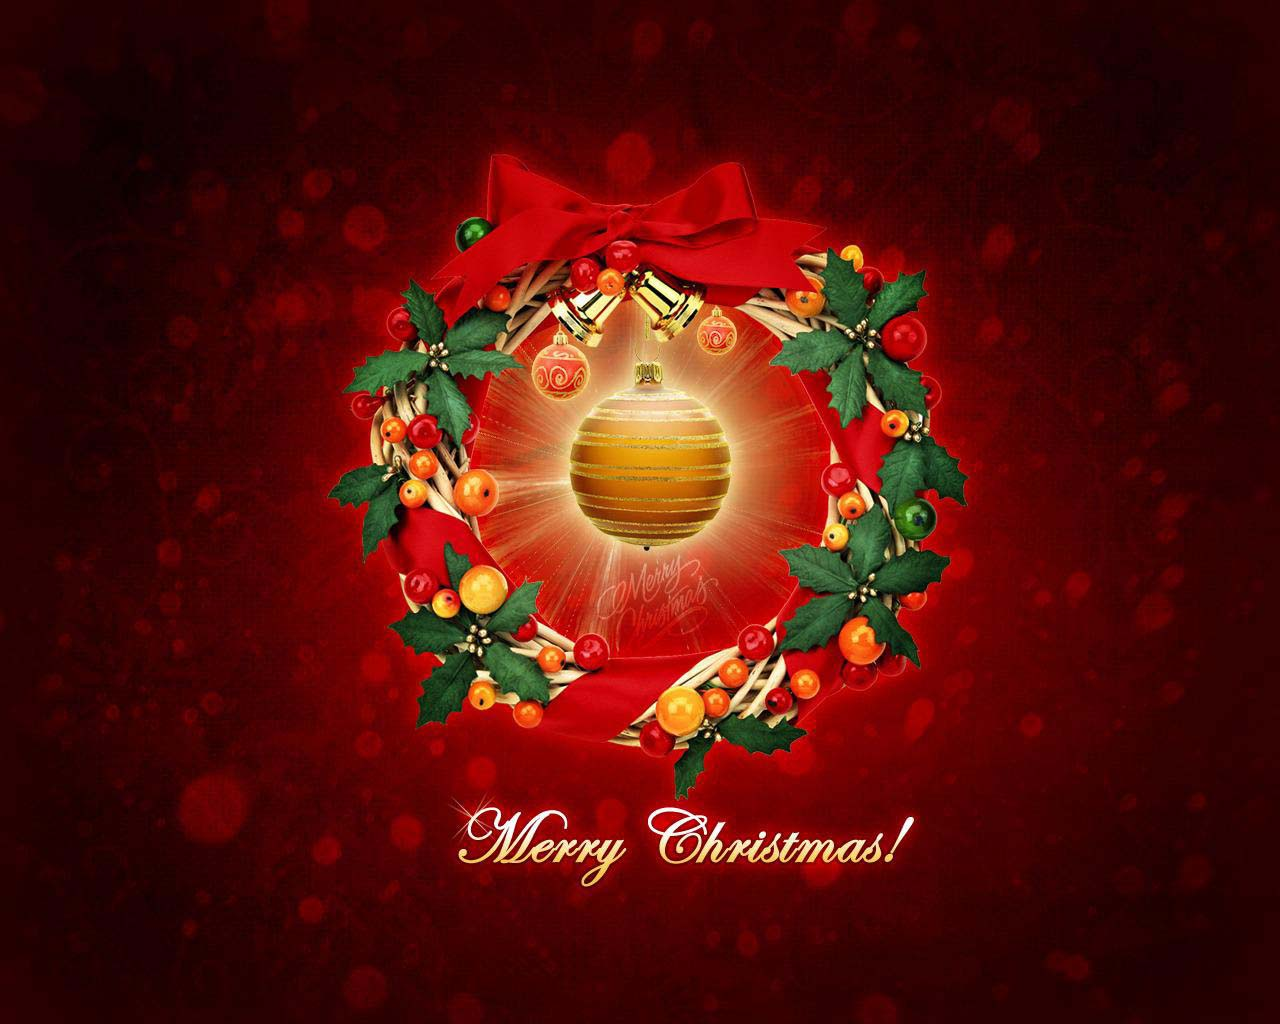 holiday are coming so here are some of christmas background wallpapers 1280x1024